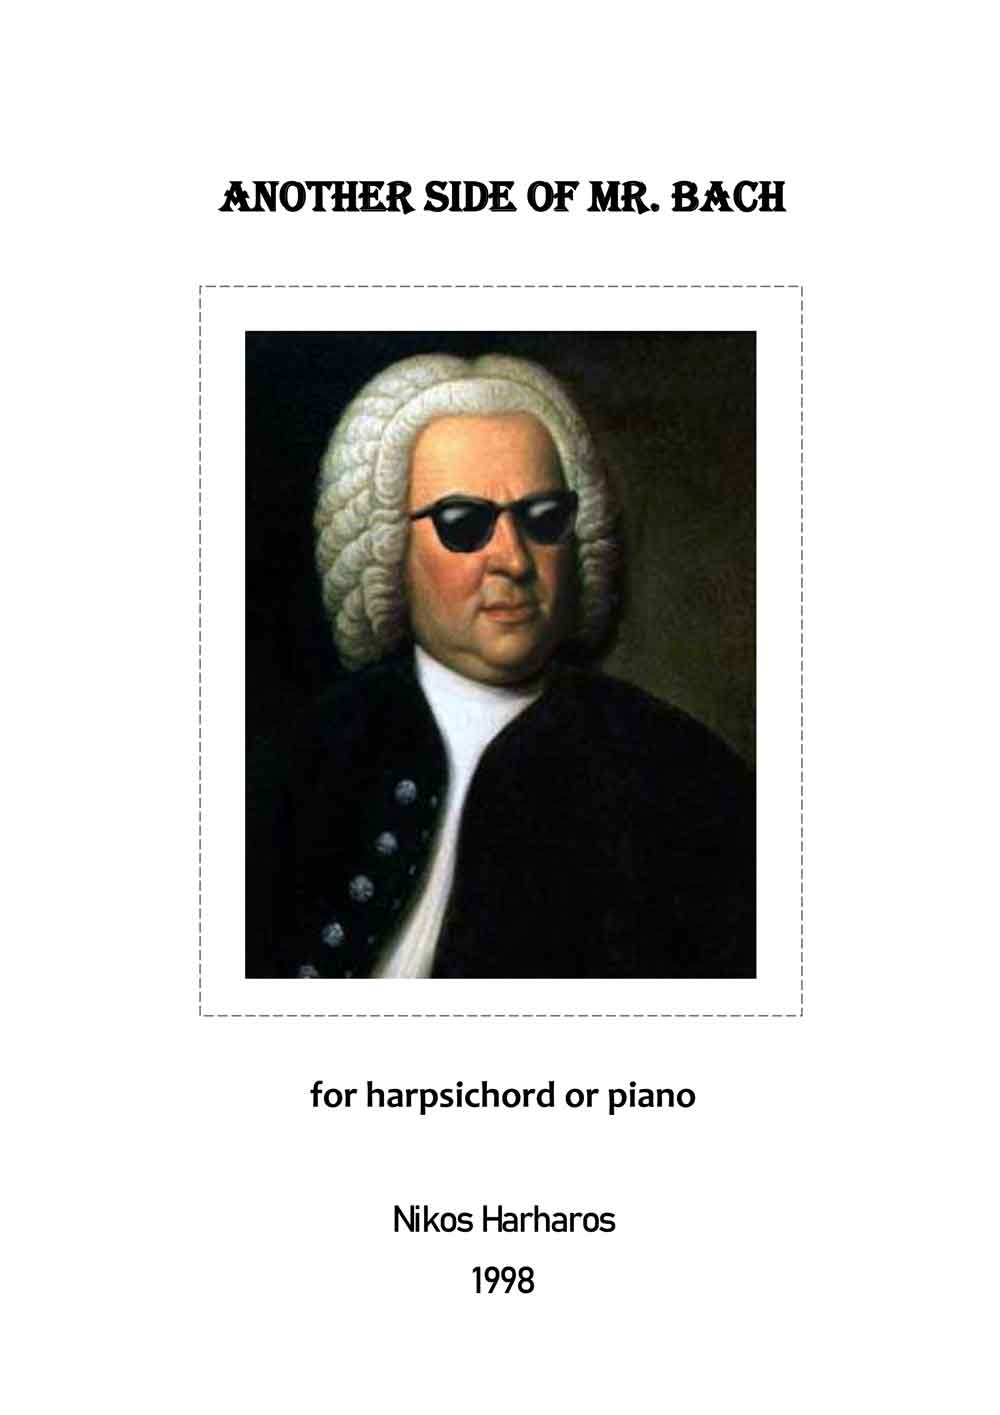 Harharos Nikos - Another Side of Mr. Bach